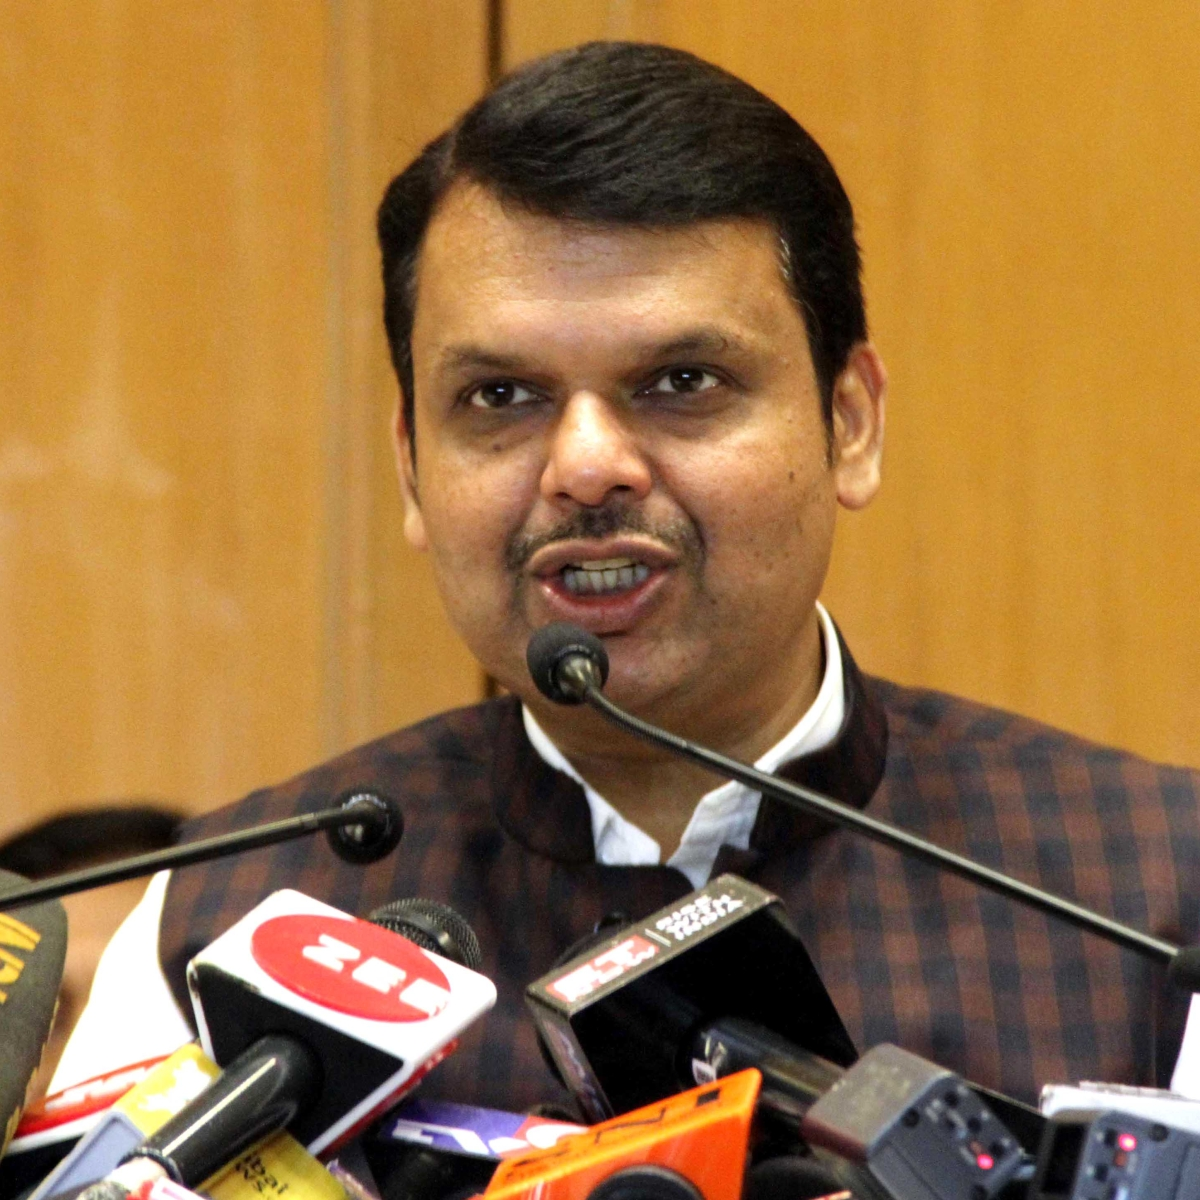 No BJP leader took Aaditya's name in Sushant case: Fadnavis